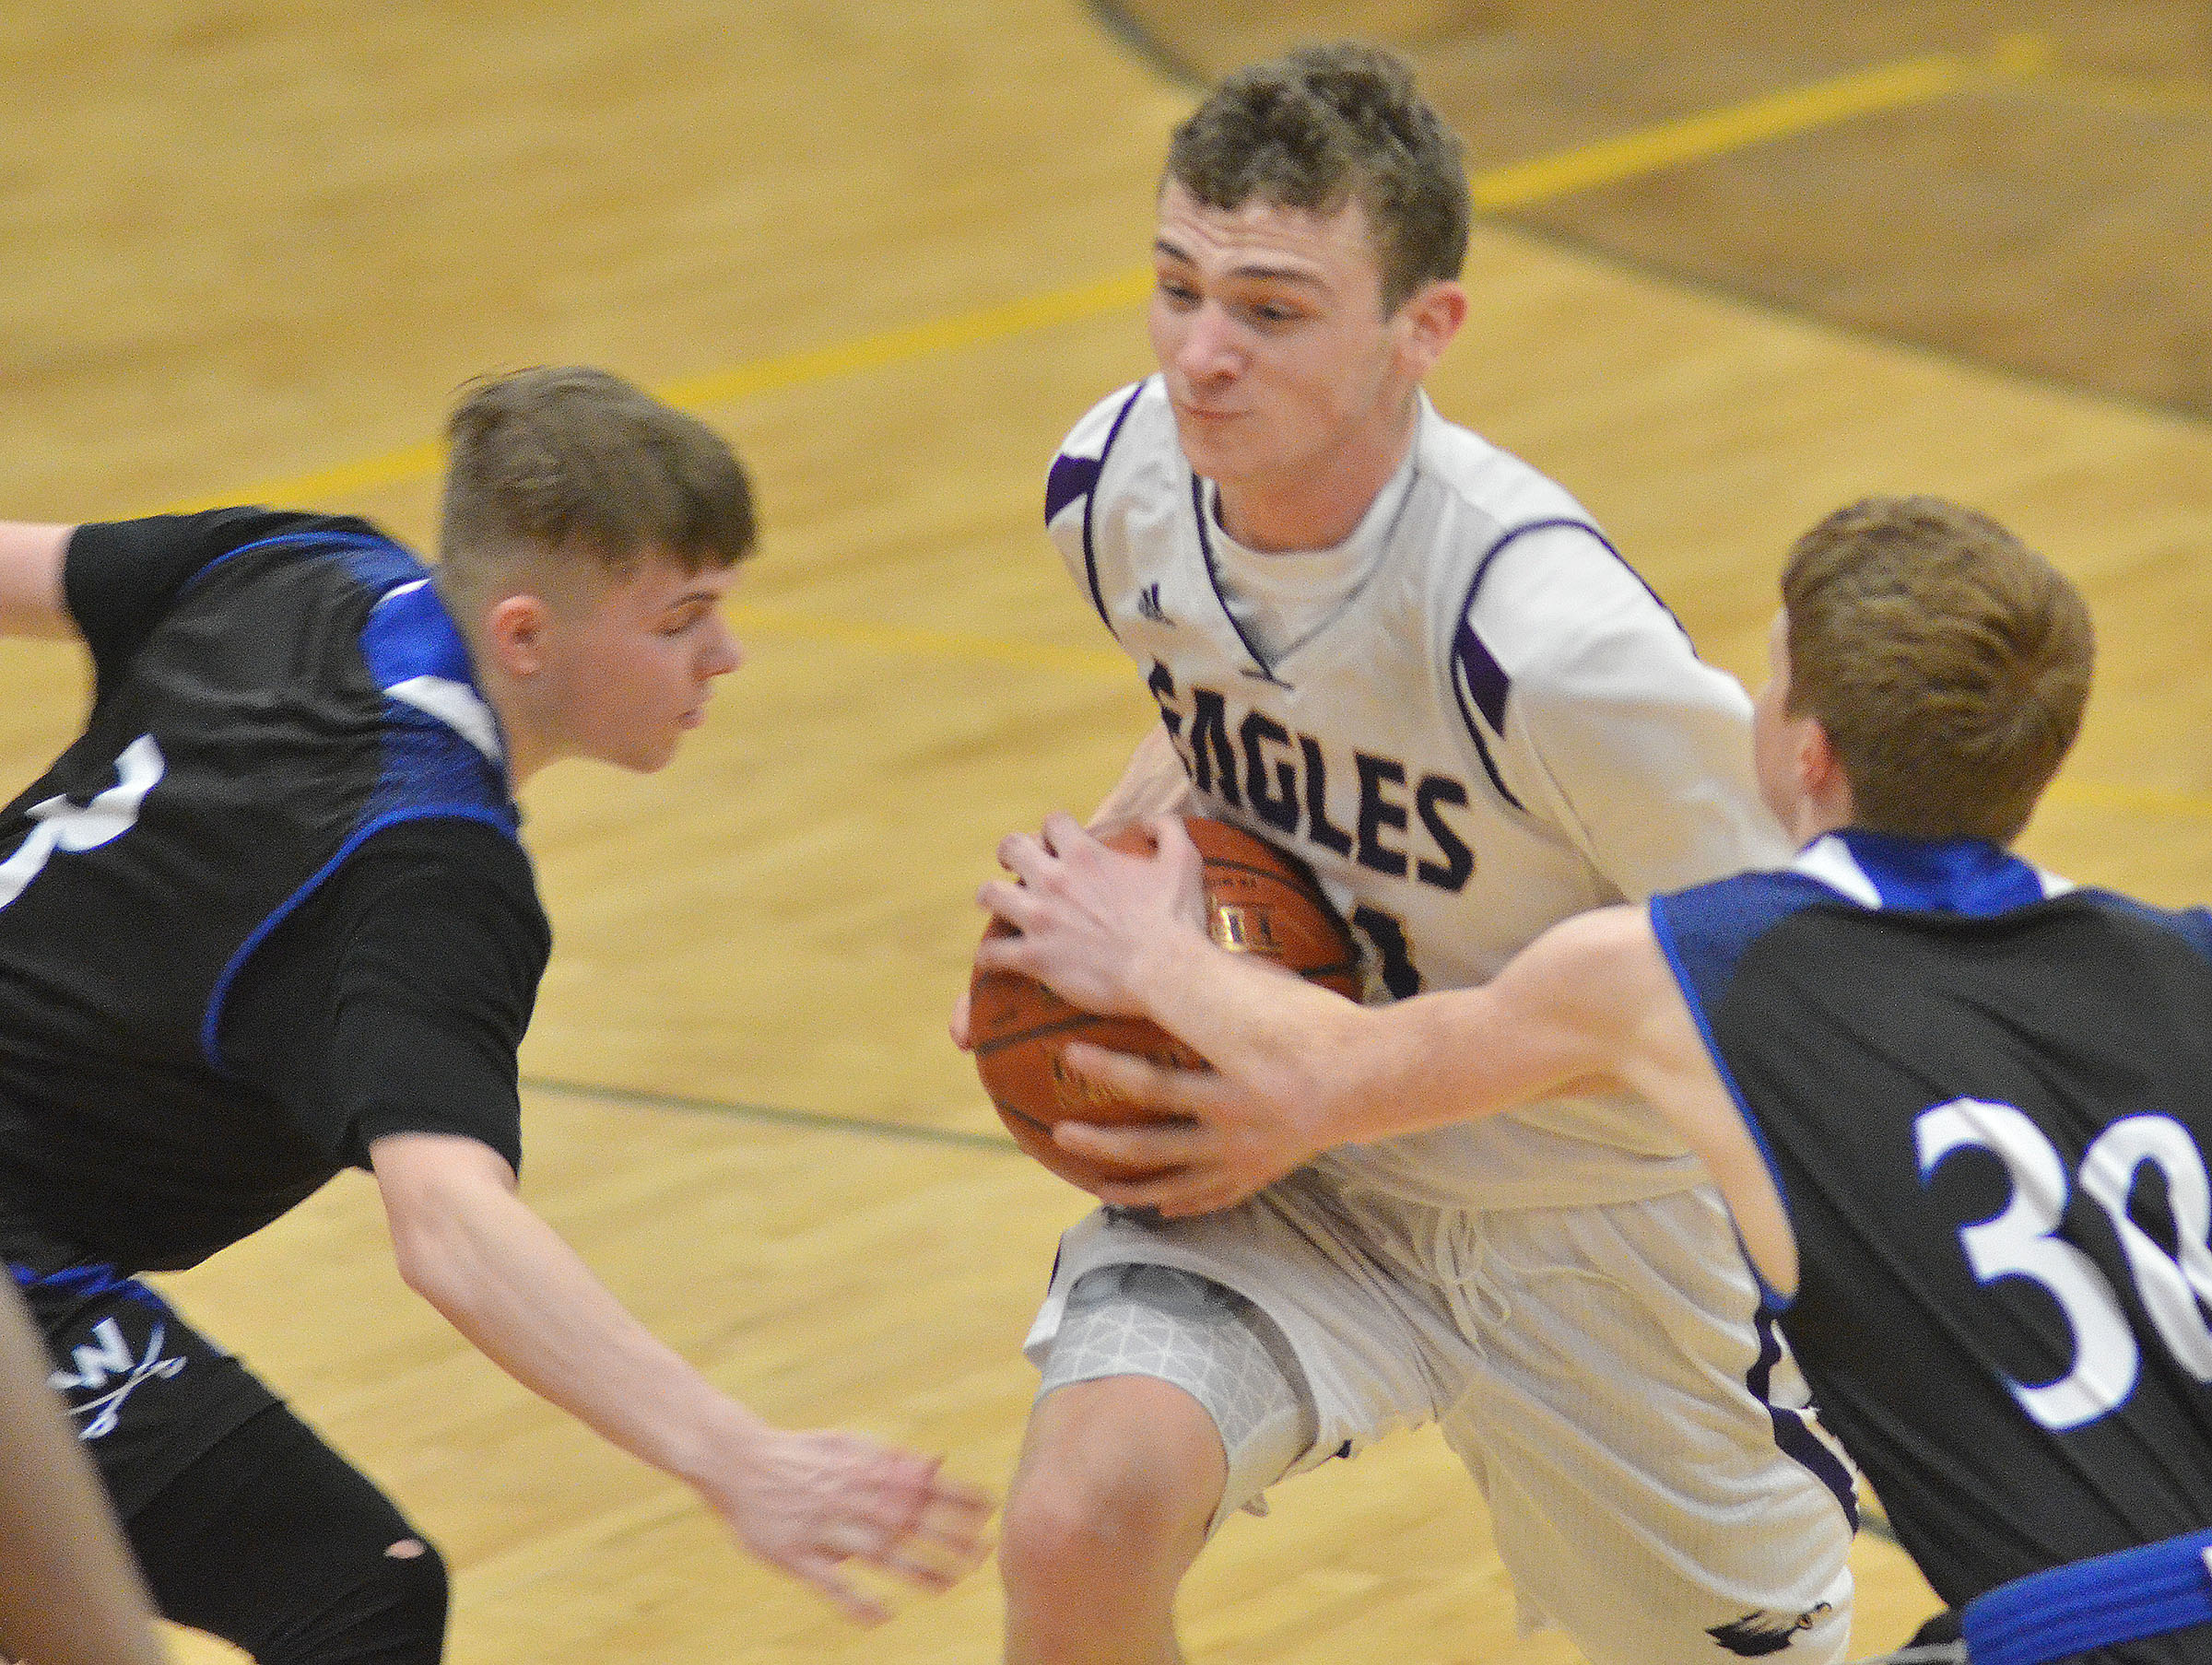 CHS junior Connor Wilson drives the ball to the hoop.